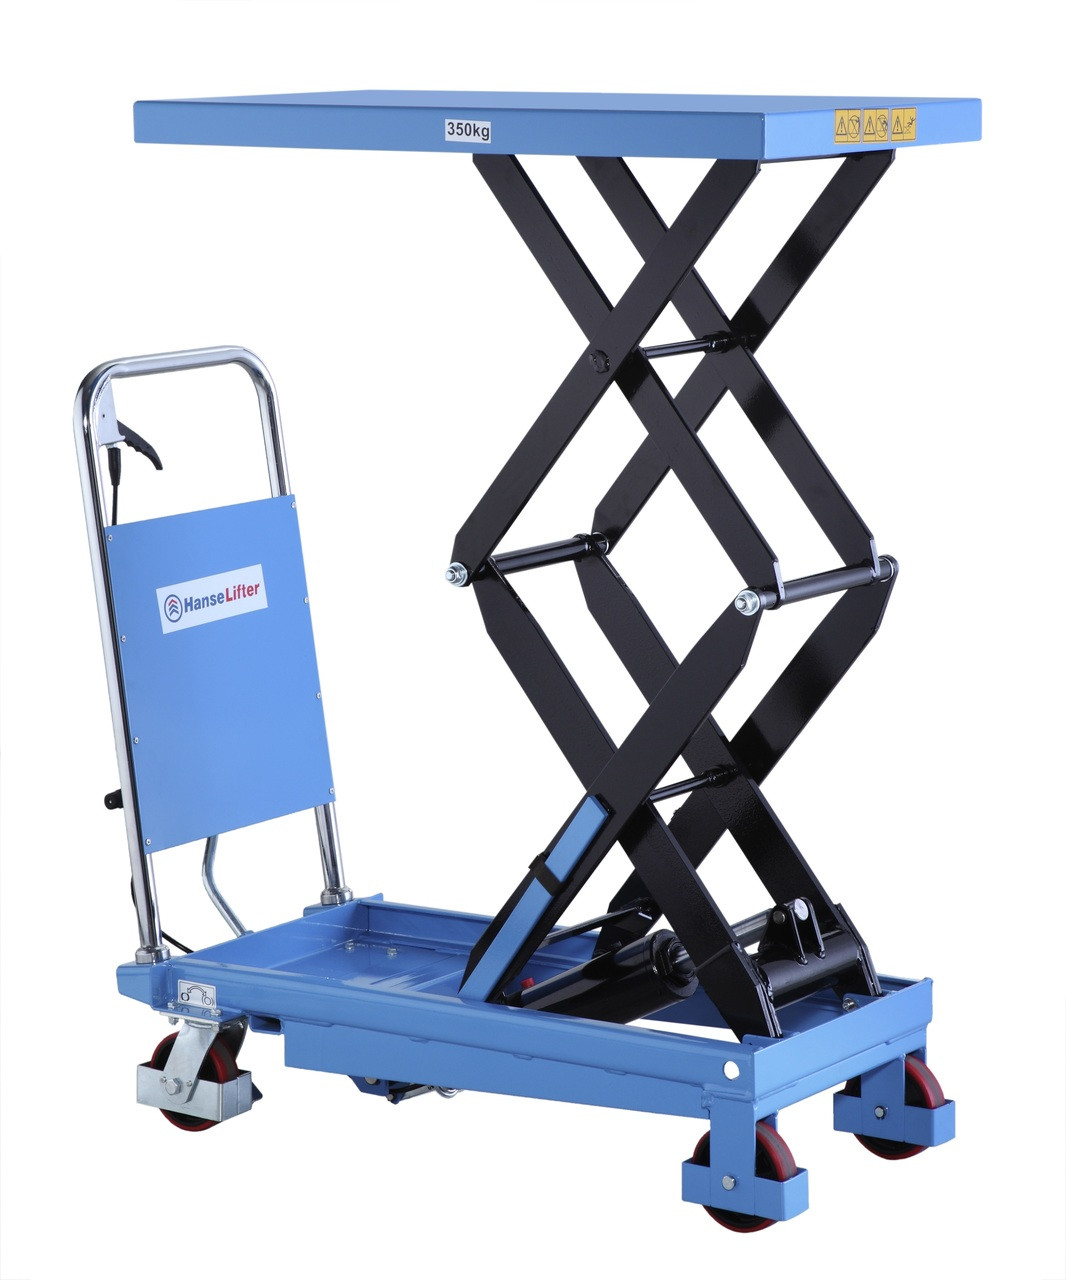 2 Ton Walk Behind Pallet Stacker Electric Forklift Price 1: Double Scissor Lift Table Lifting Up To 350kg